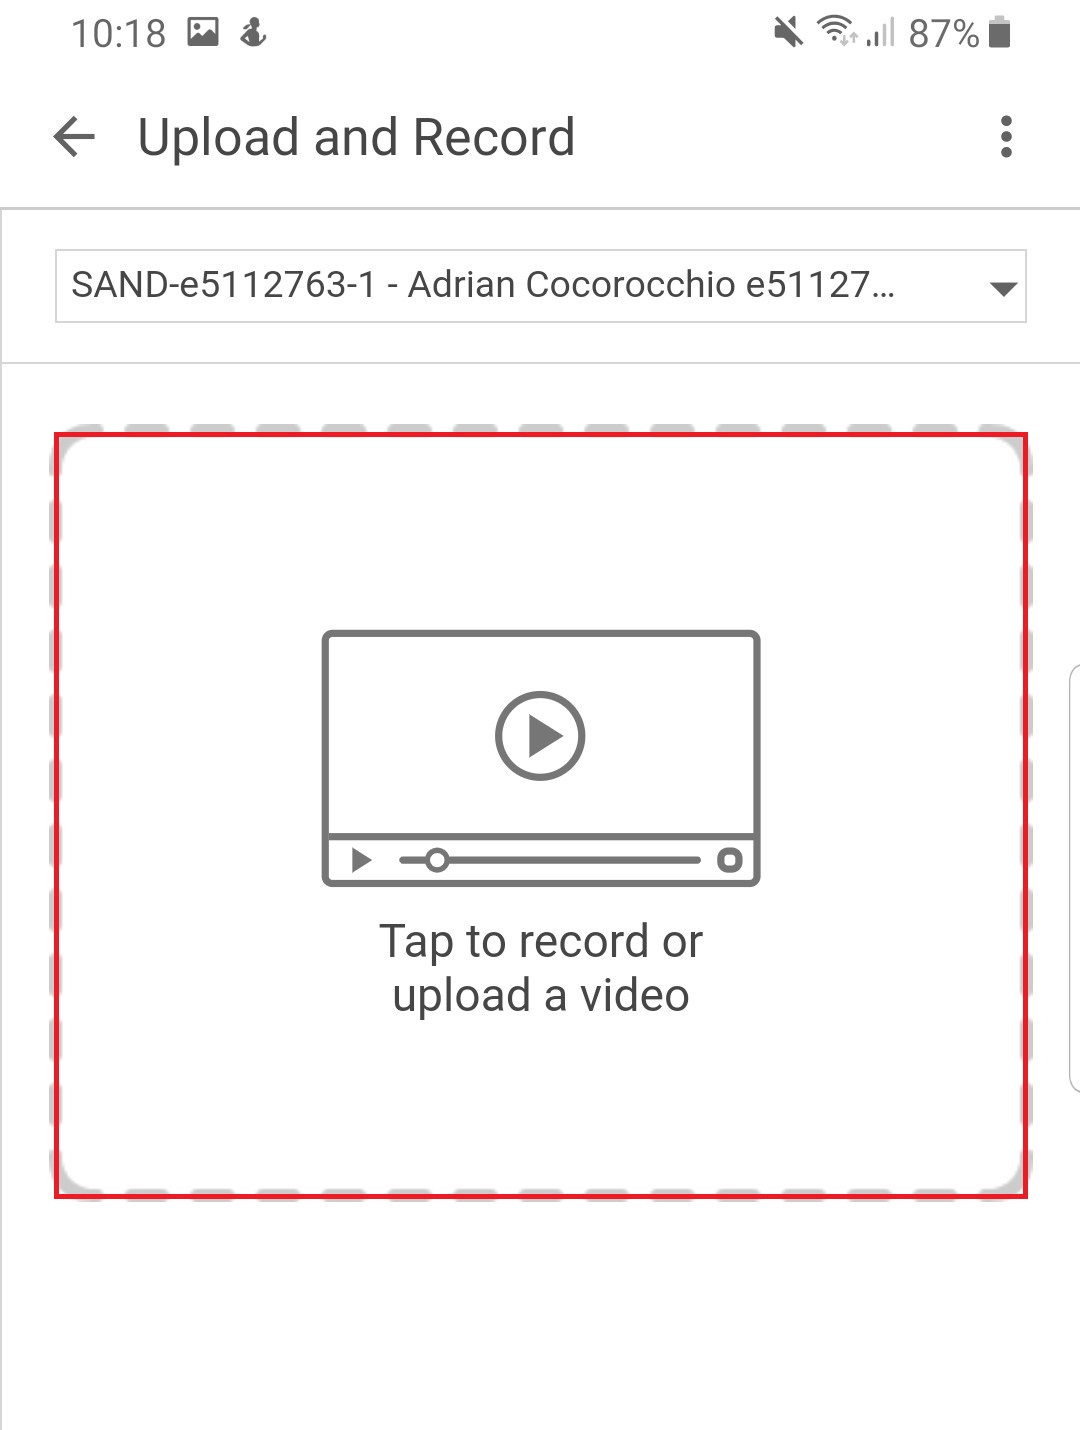 Click the Tap to record or upload a video button to Record or Upload a file